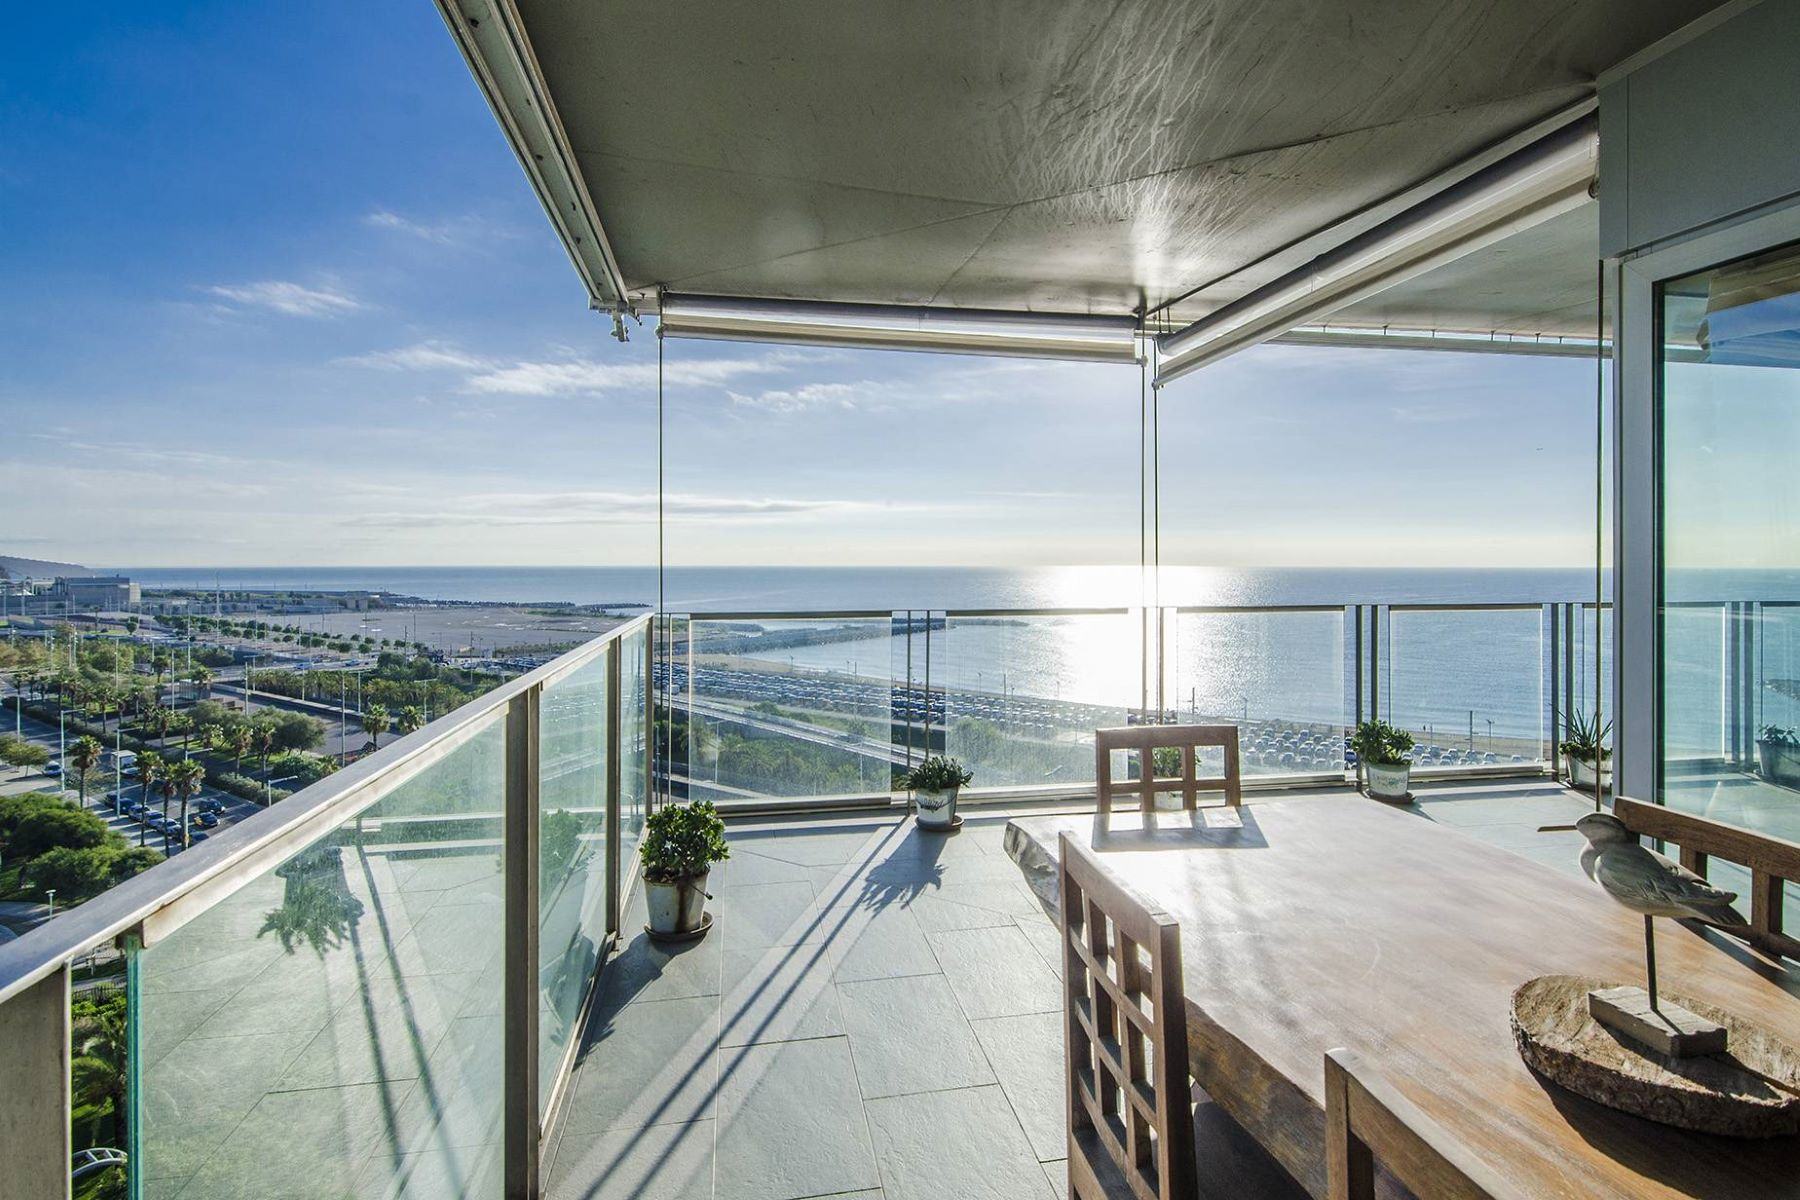 Apartment for Sale at Spectacular Seafront Apartment in Diagonal Mar, Barcelona Barcelona City, Barcelona, 08019 Spain